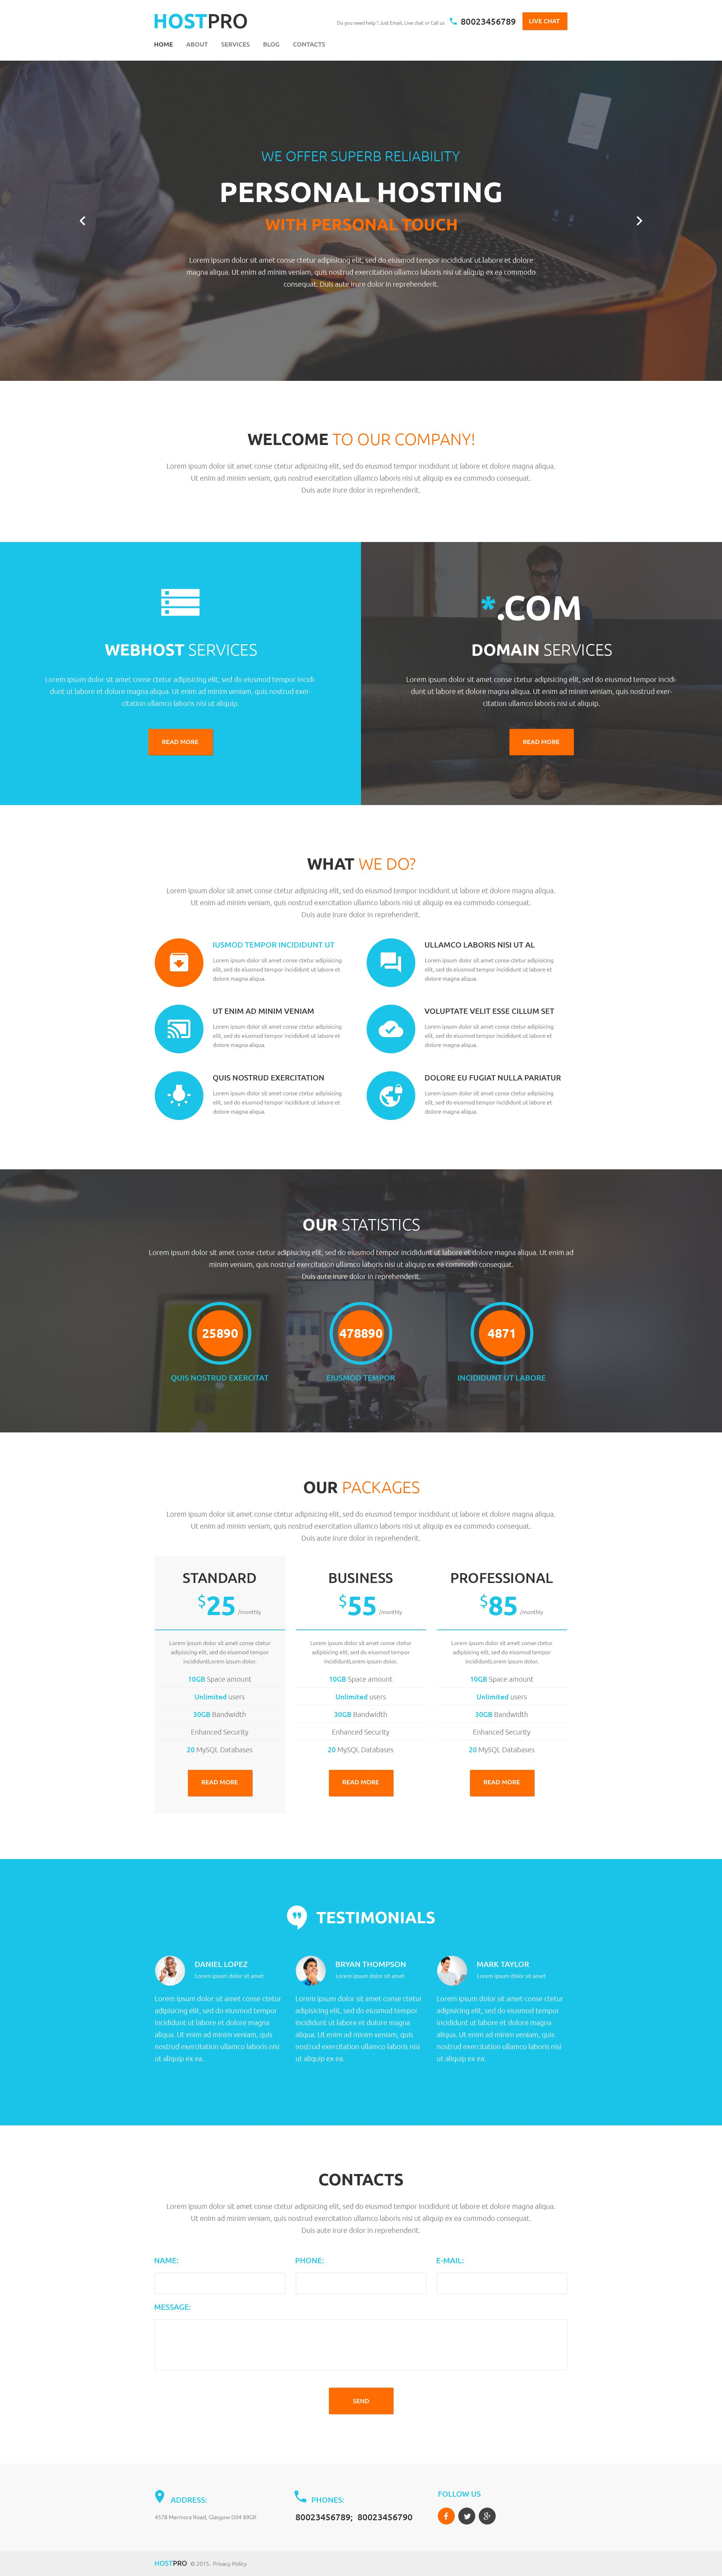 Wordpress Theme for Hosting Companies | Wordpress Theme | Pinterest ...